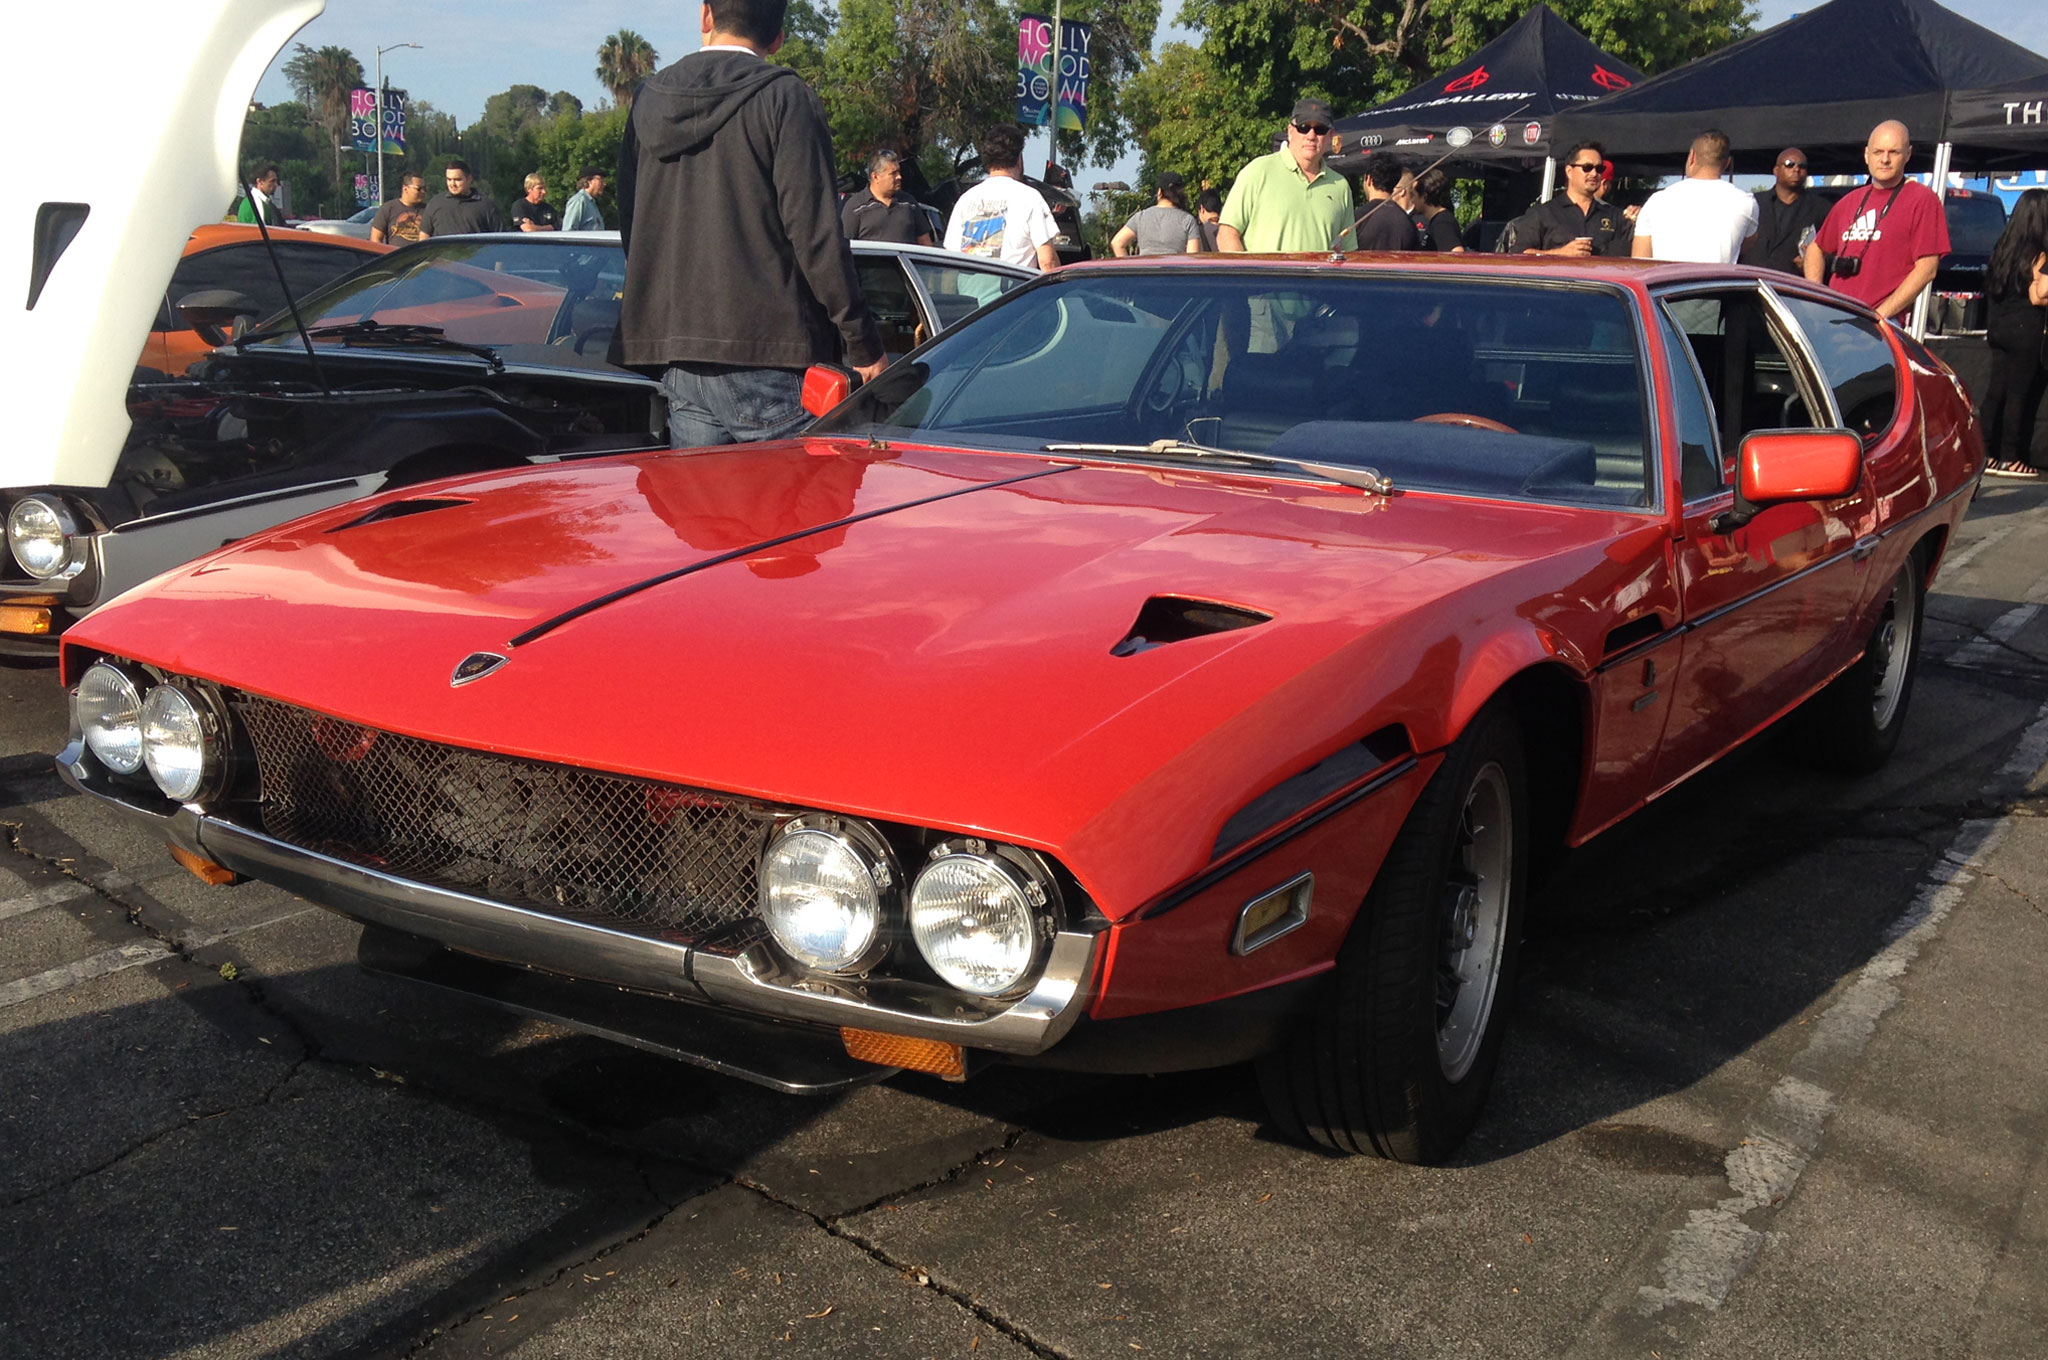 Ah, Espada. The four-seater grand touring coupe designed by Marcello Gandini while he was with Bertone. Espada means sword in Spanish and is a reference to the deadly instrument used in bullfights by the matador. Espadas were made for 10 years beginning in 1968, and the design is something of an acquired taste.